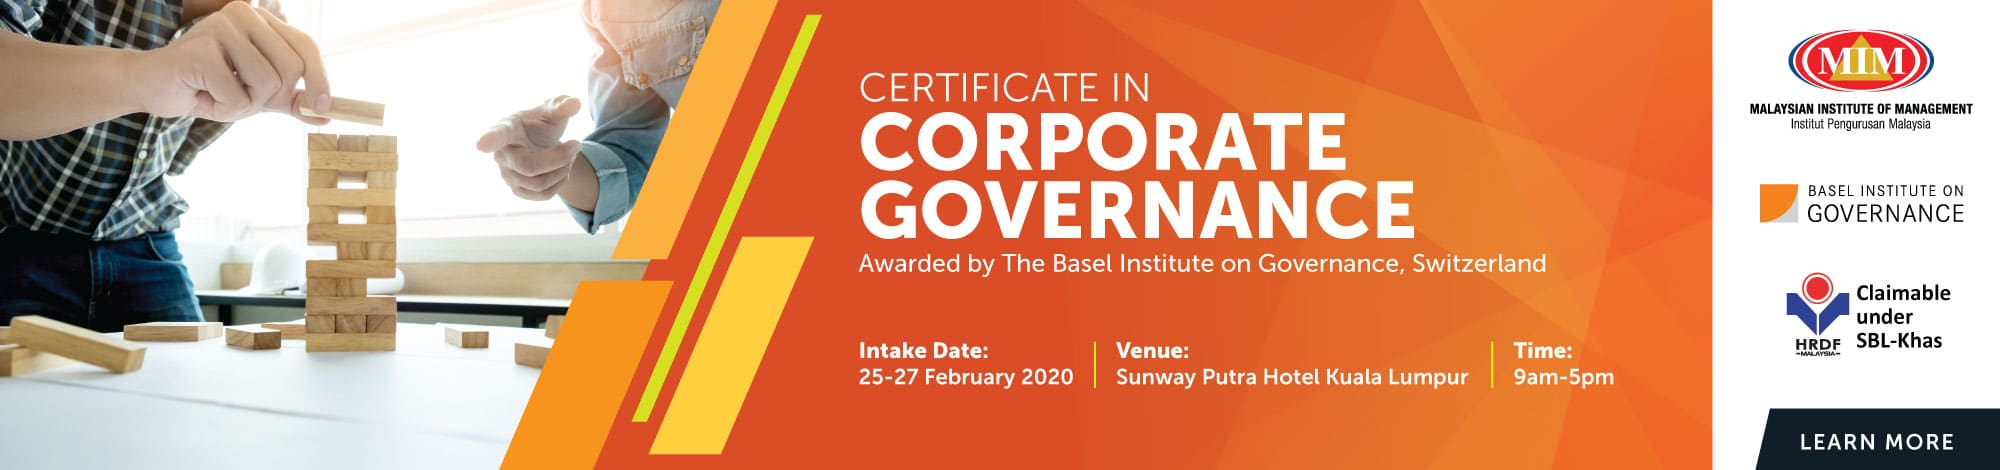 MIM_Social-Media_Certificate-in-Corporate-Governance_Website